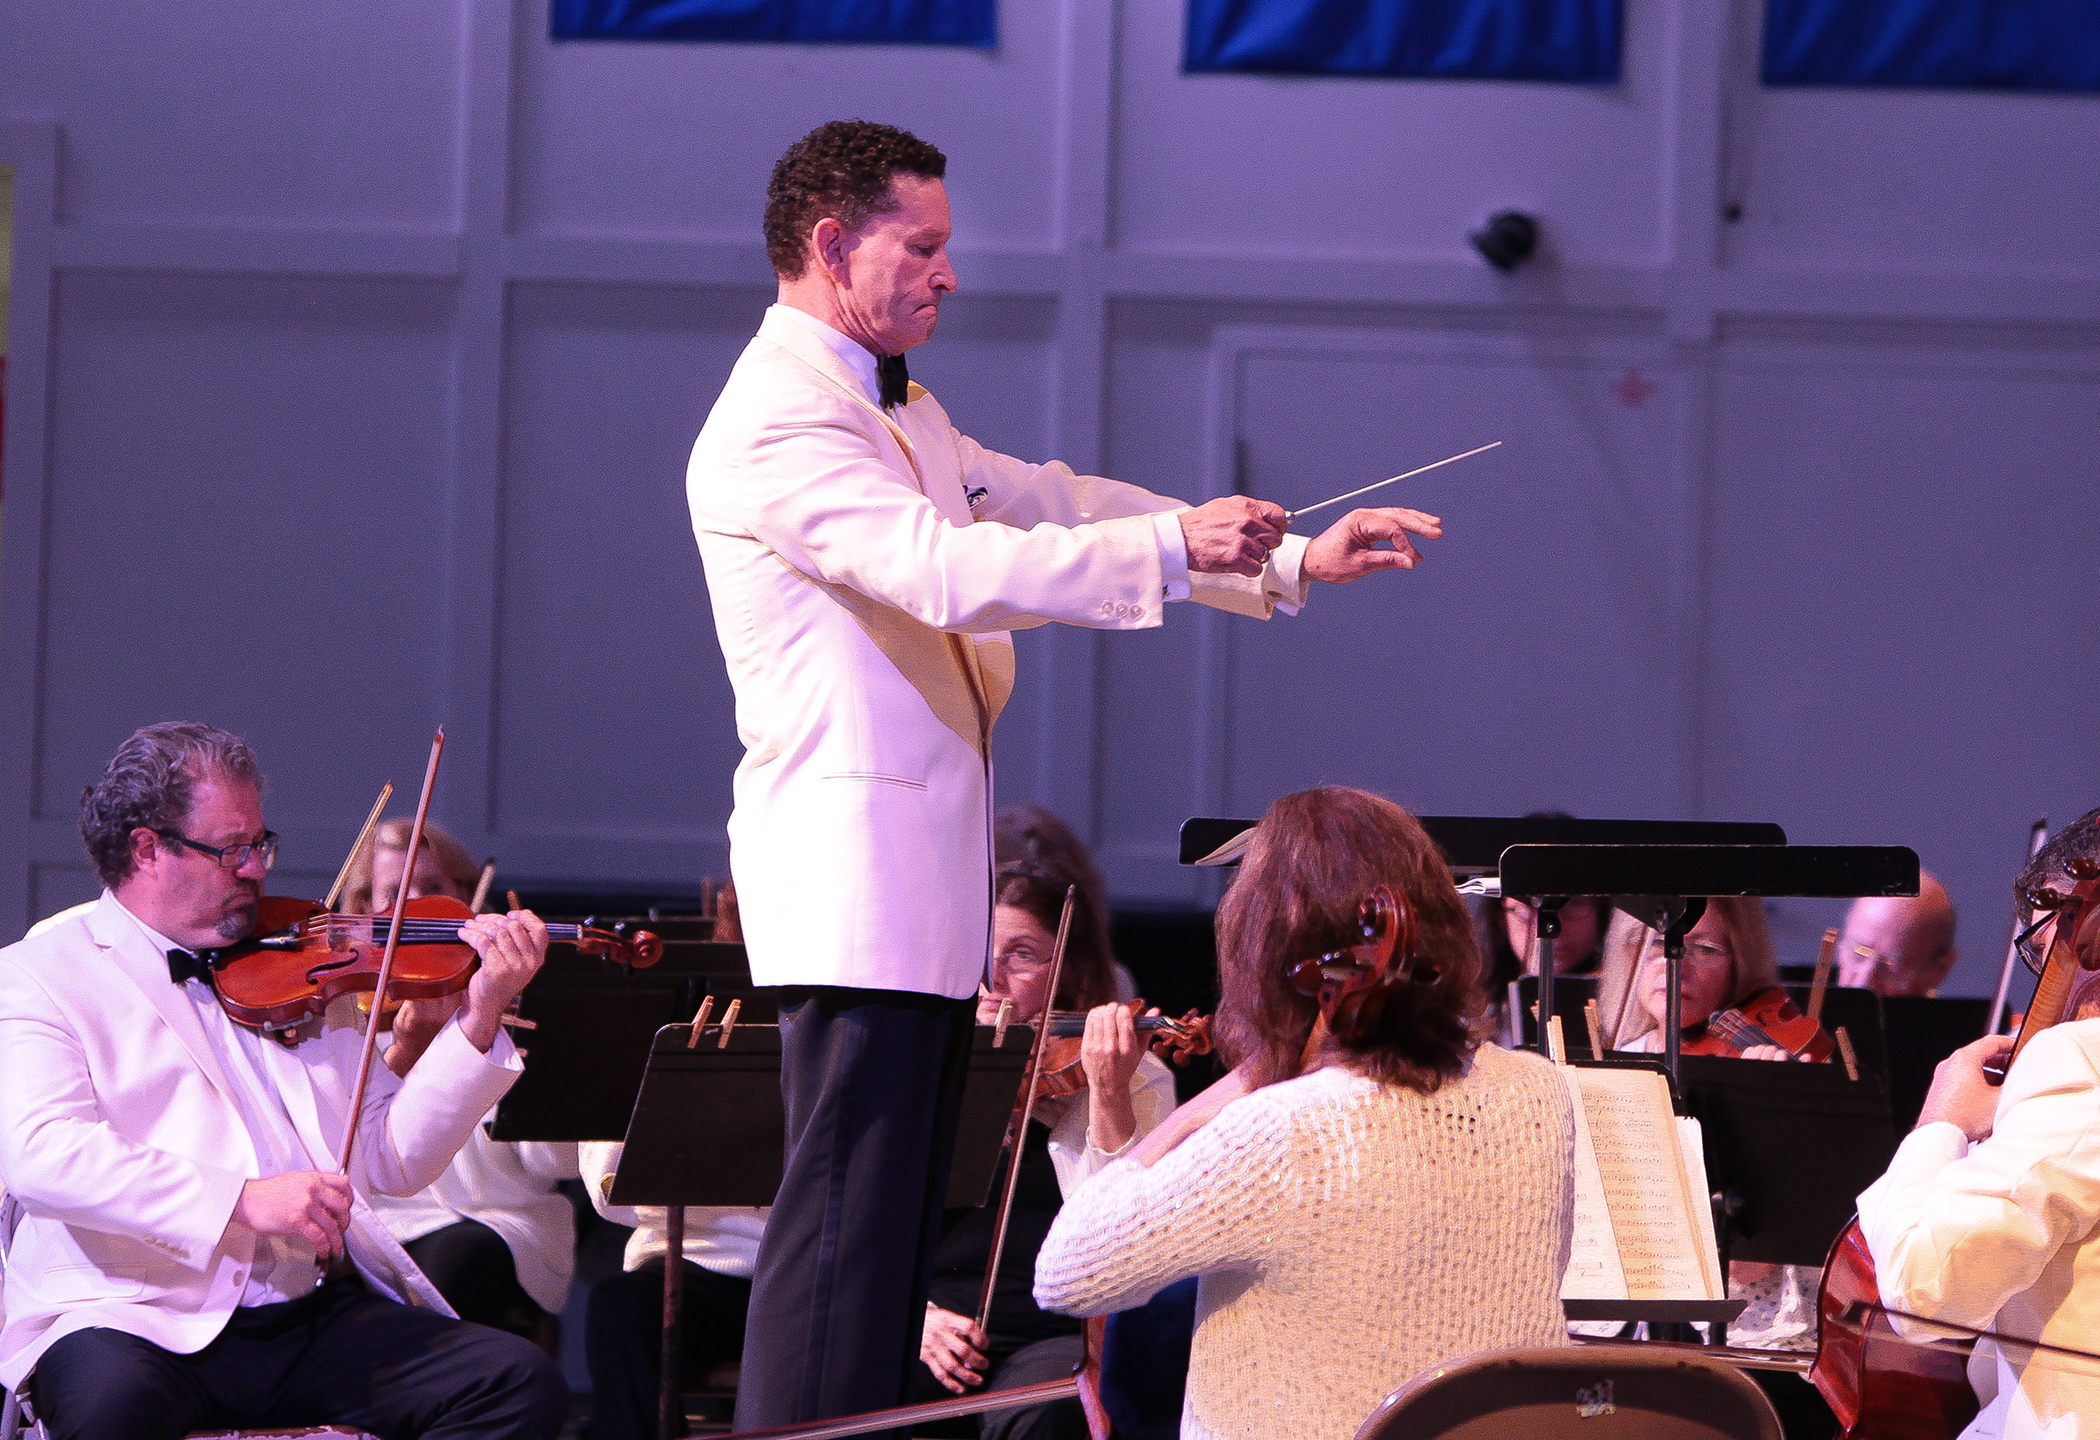 South Shore Conservatory - EUS-Orchestra-2017-Nicholas-Palmer-conductor-by-Denise-Maccaferri